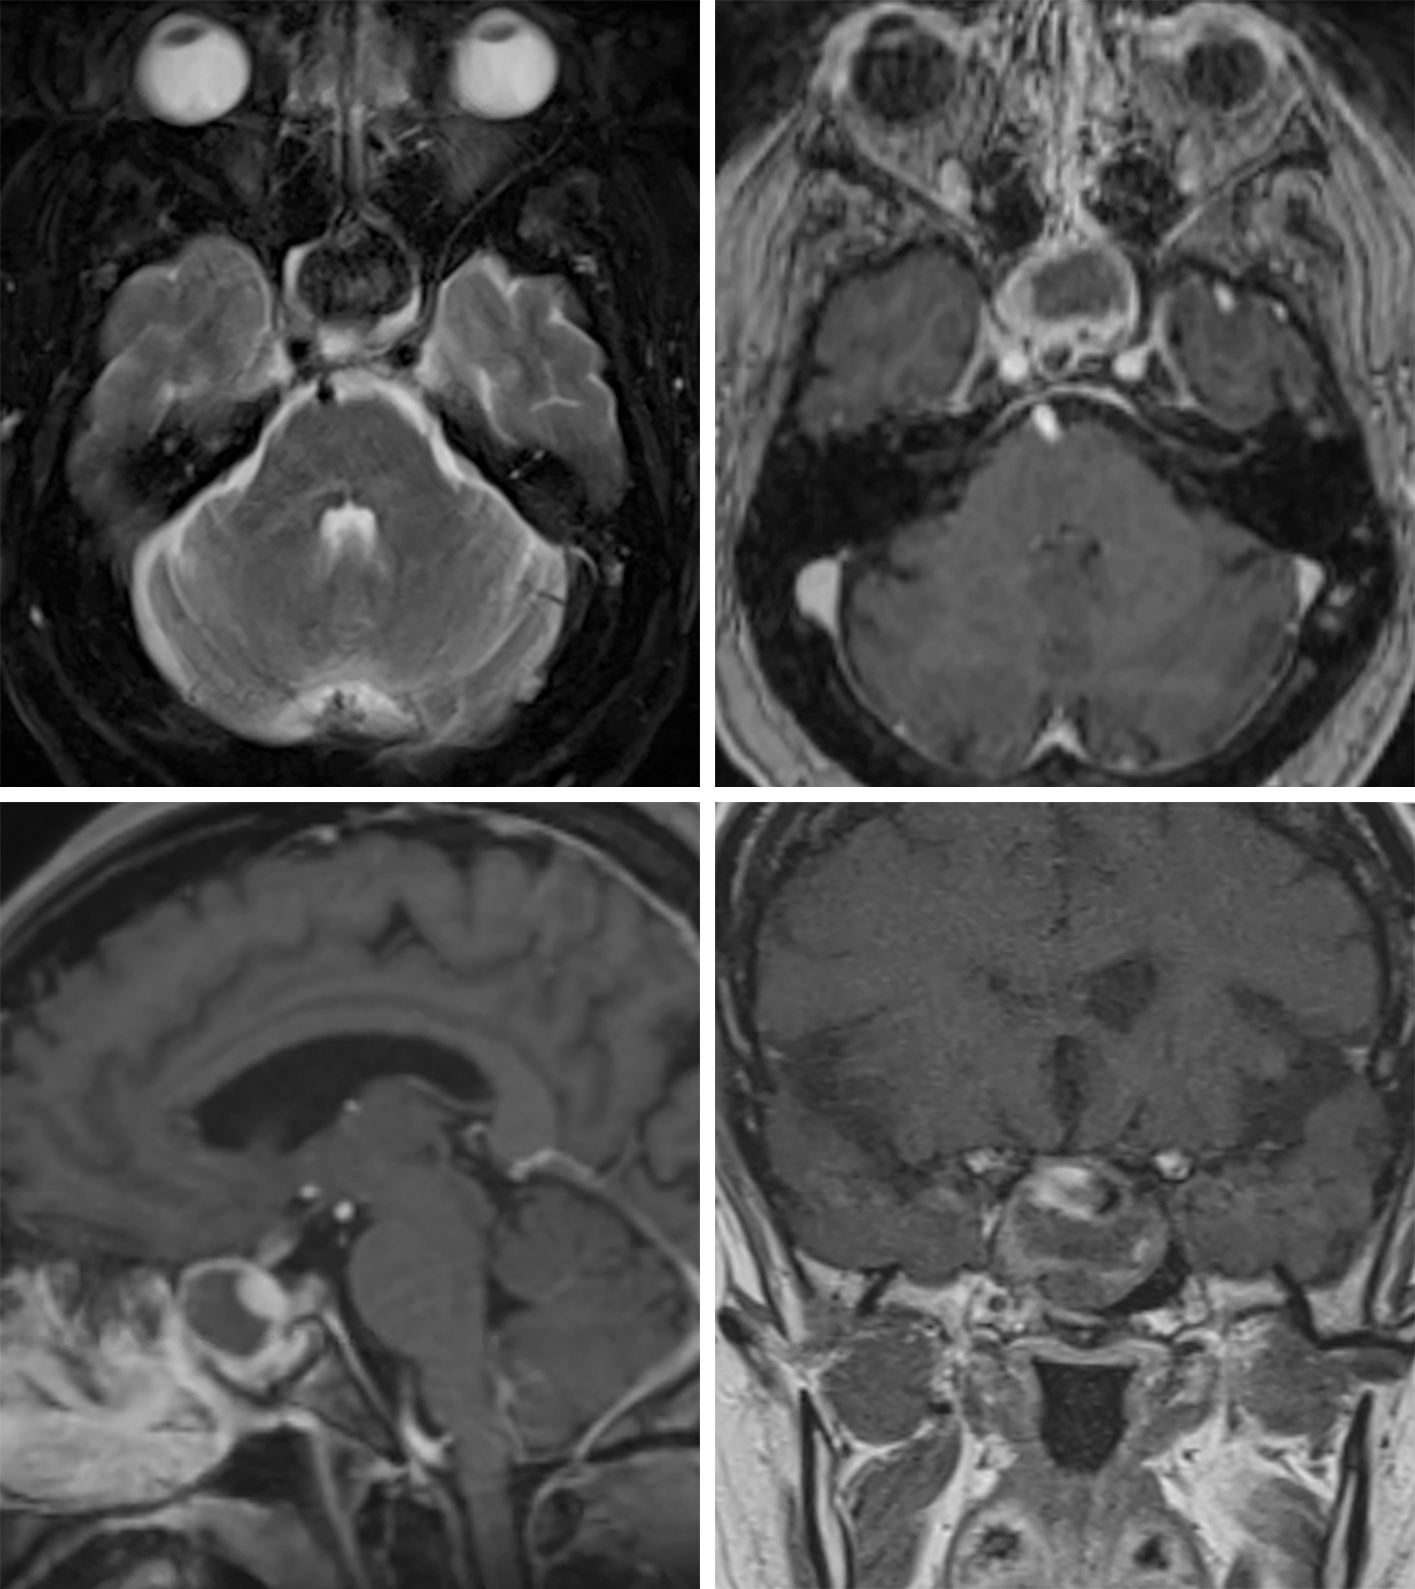 Figure 3: This craniopharyngioma demonstrates typical low T2 signal intensity centrally (top left), indicating highly proteinaceous content. The lesion appears to arise from the sella and demonstrates a typical, somewhat complex peripheral and septated enhancement pattern after contrast administration (top right, axial; bottom left, sagittal; bottom right, coronal). (Bottom Right) The superior cystic component also demonstrates a mix of signal intensities that also likely reflects complex proteinaceous contents.